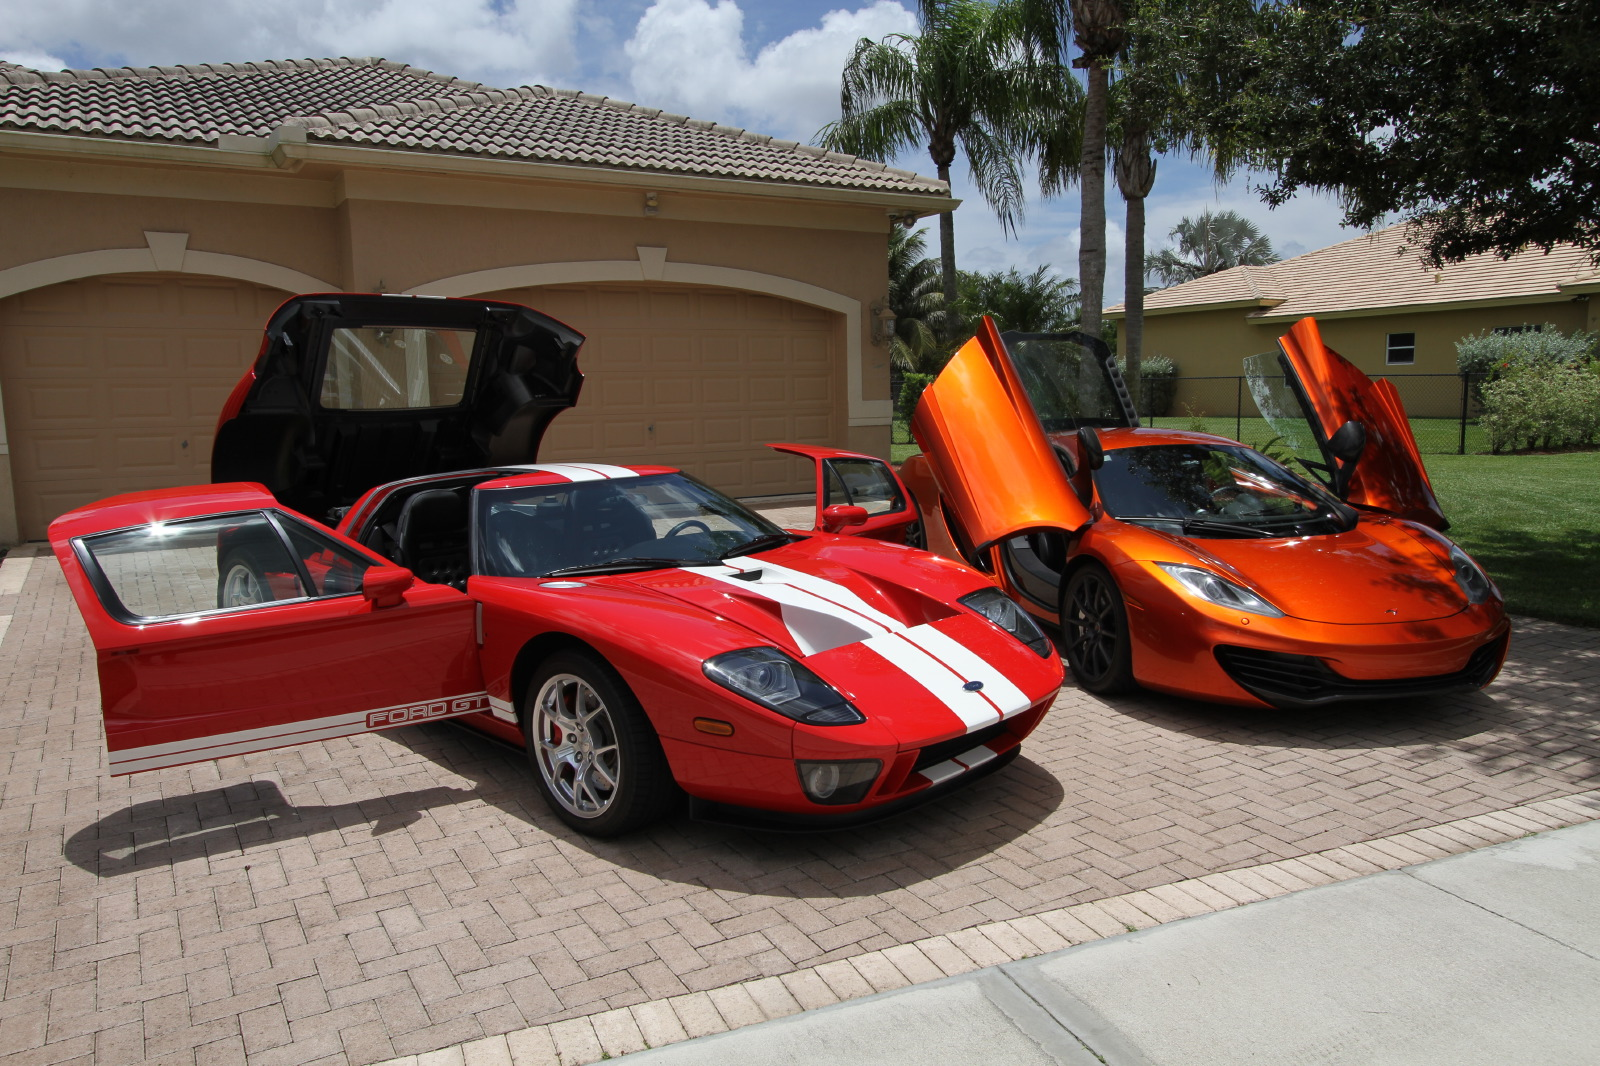 mclaren-mp4-12c-volcano-orange-vs-ford-gt-red-white-009